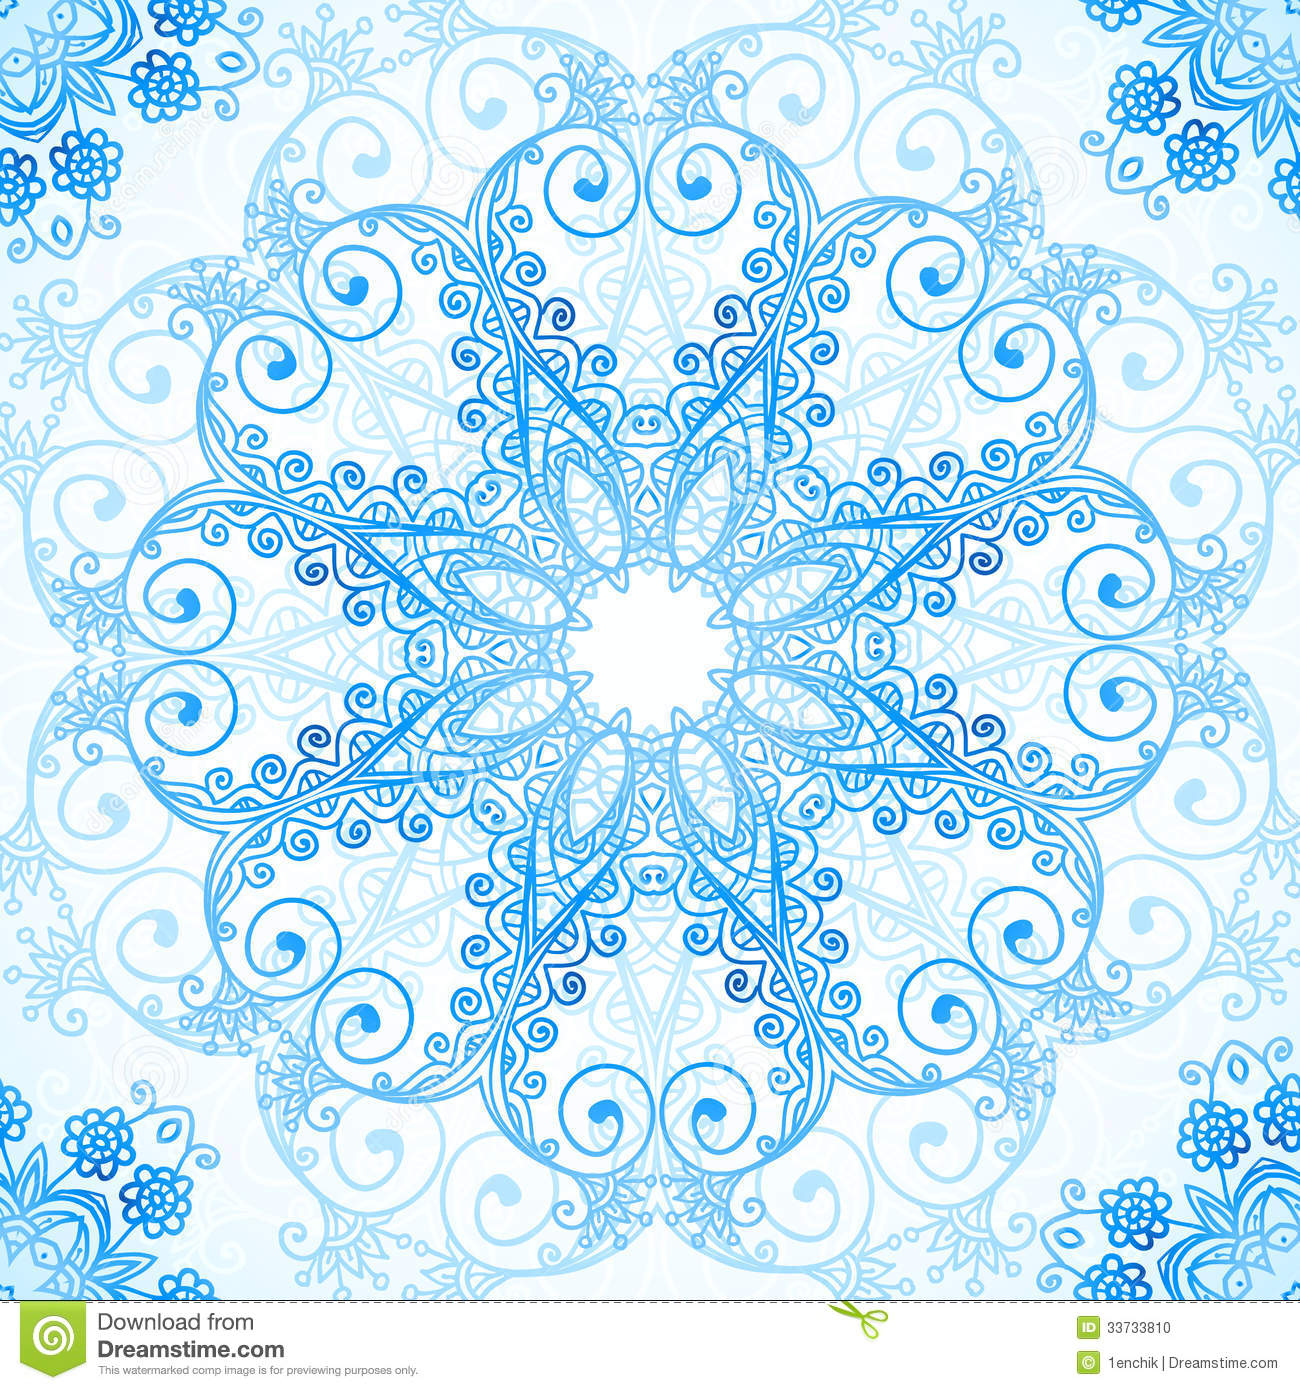 Wedding Invitations Snowflake Theme for best invitations ideas